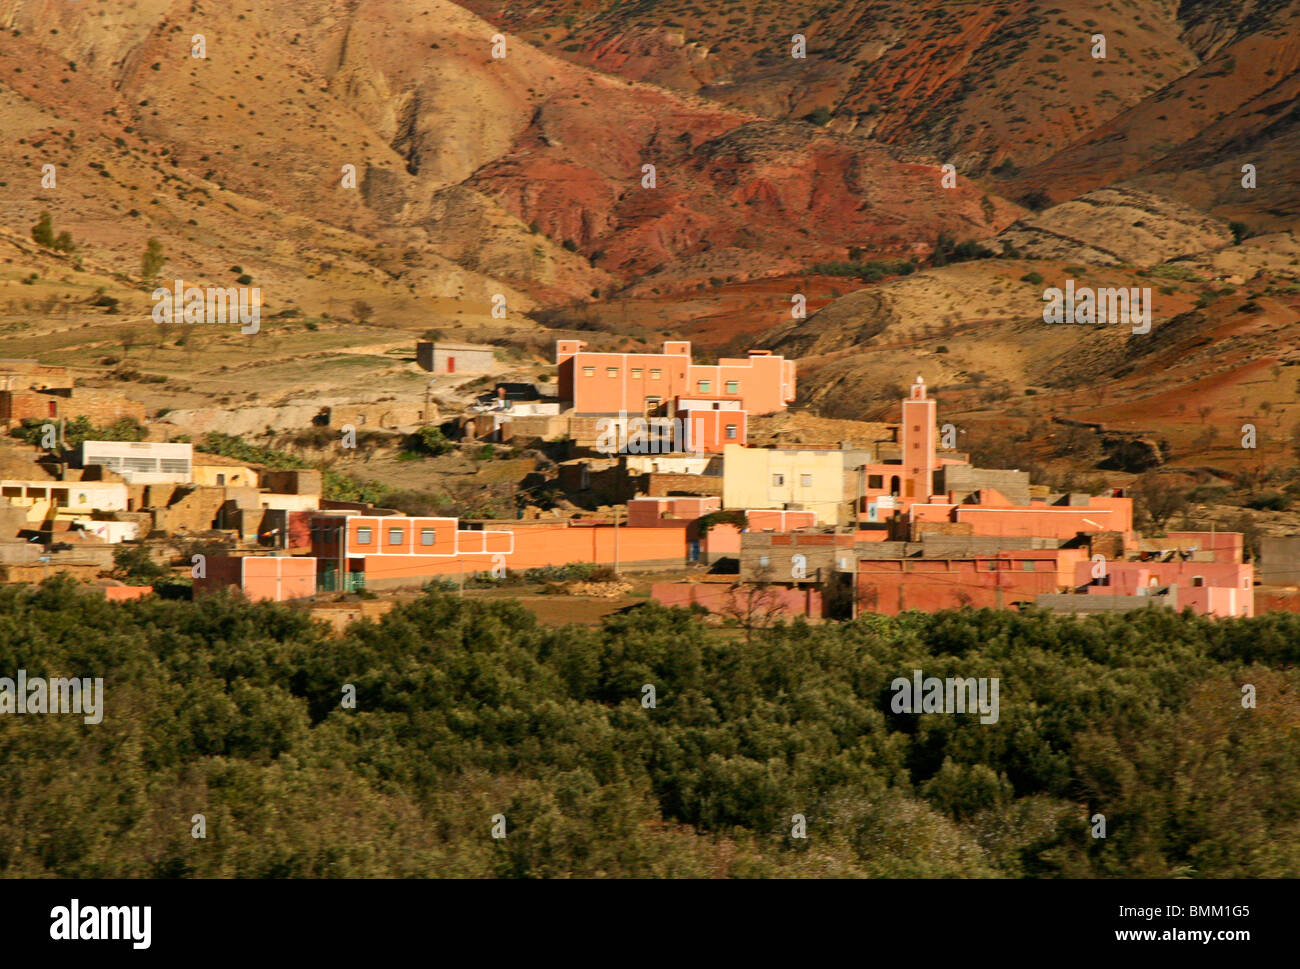 North africa africa morocco small village settlements dot the stock photo royalty free image - The tiny house village a miniature settlement ...